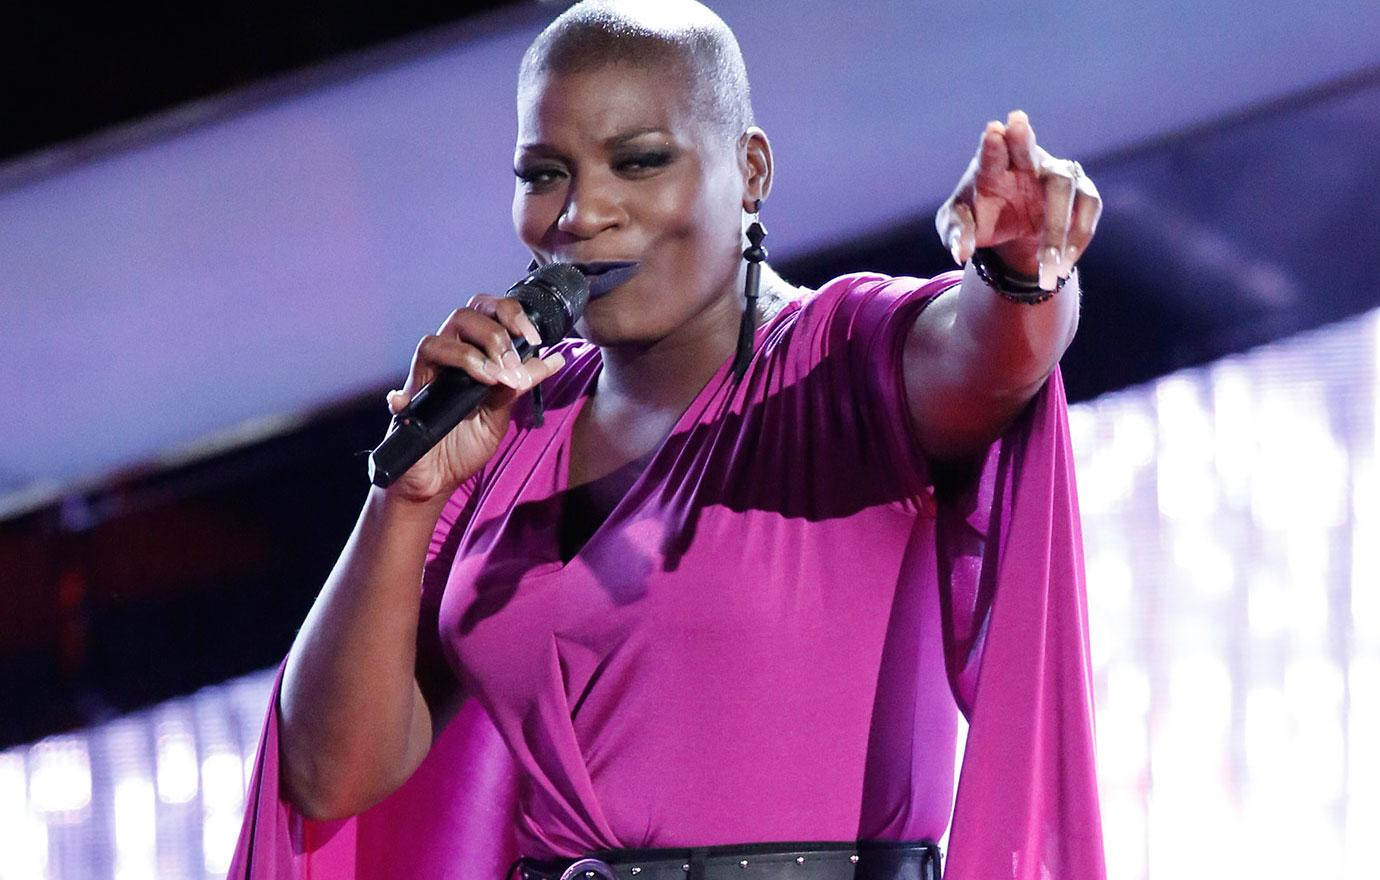 Janice Freeman The Voice Contestant Dies